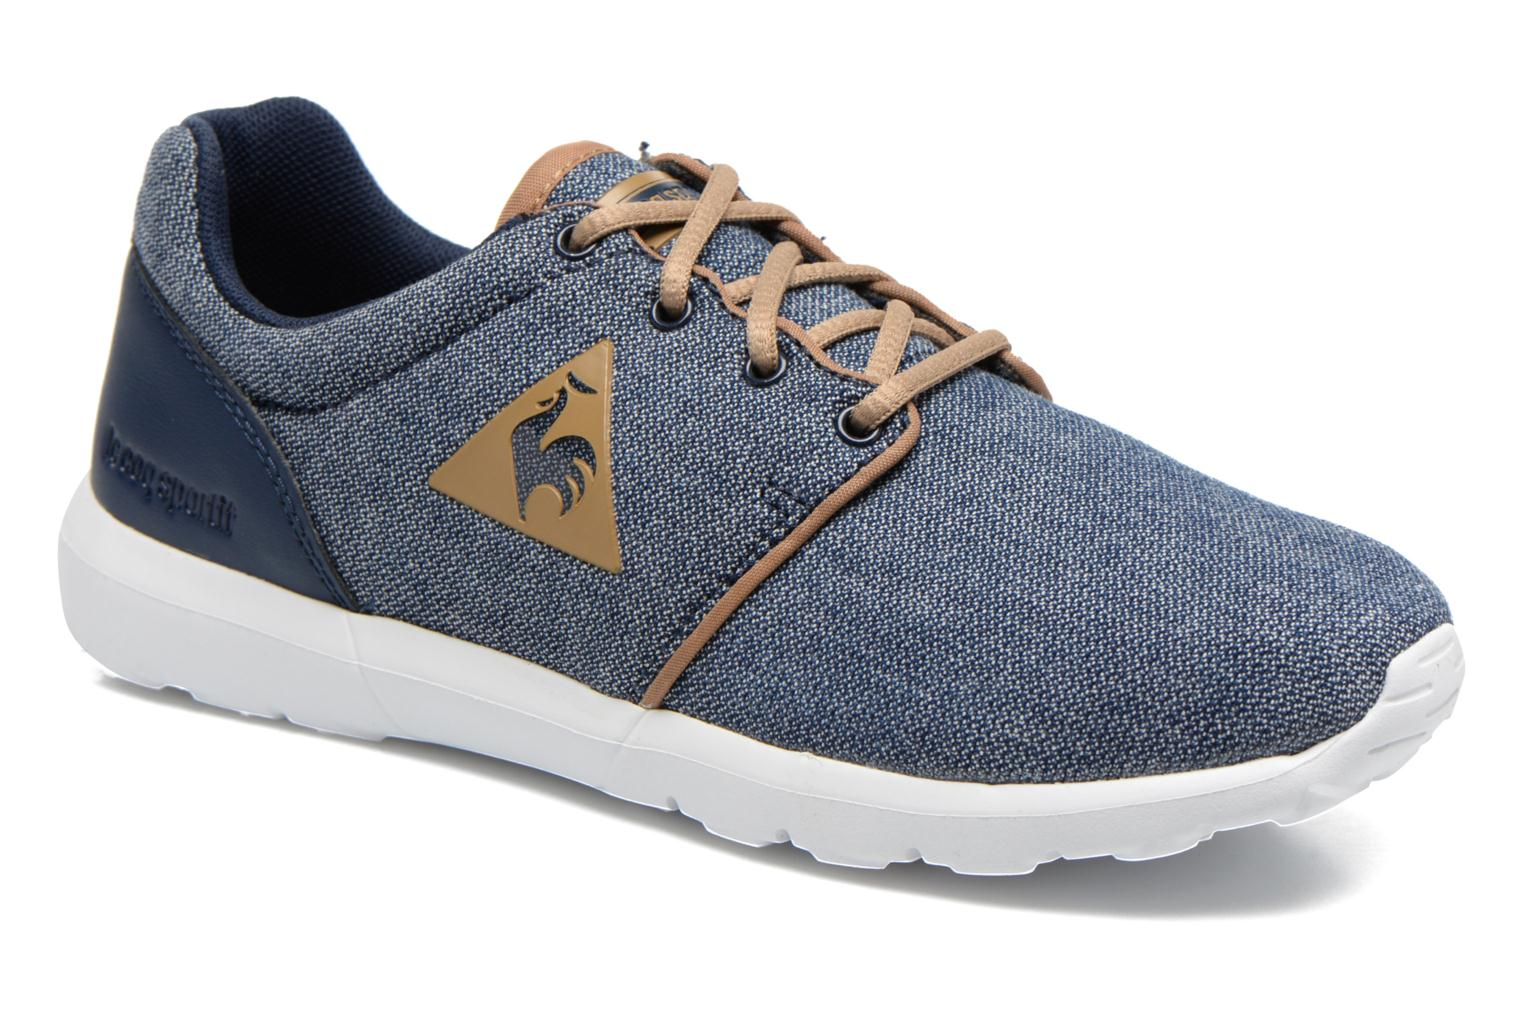 Sneakers Dynacomf GS by Le Coq Sportif